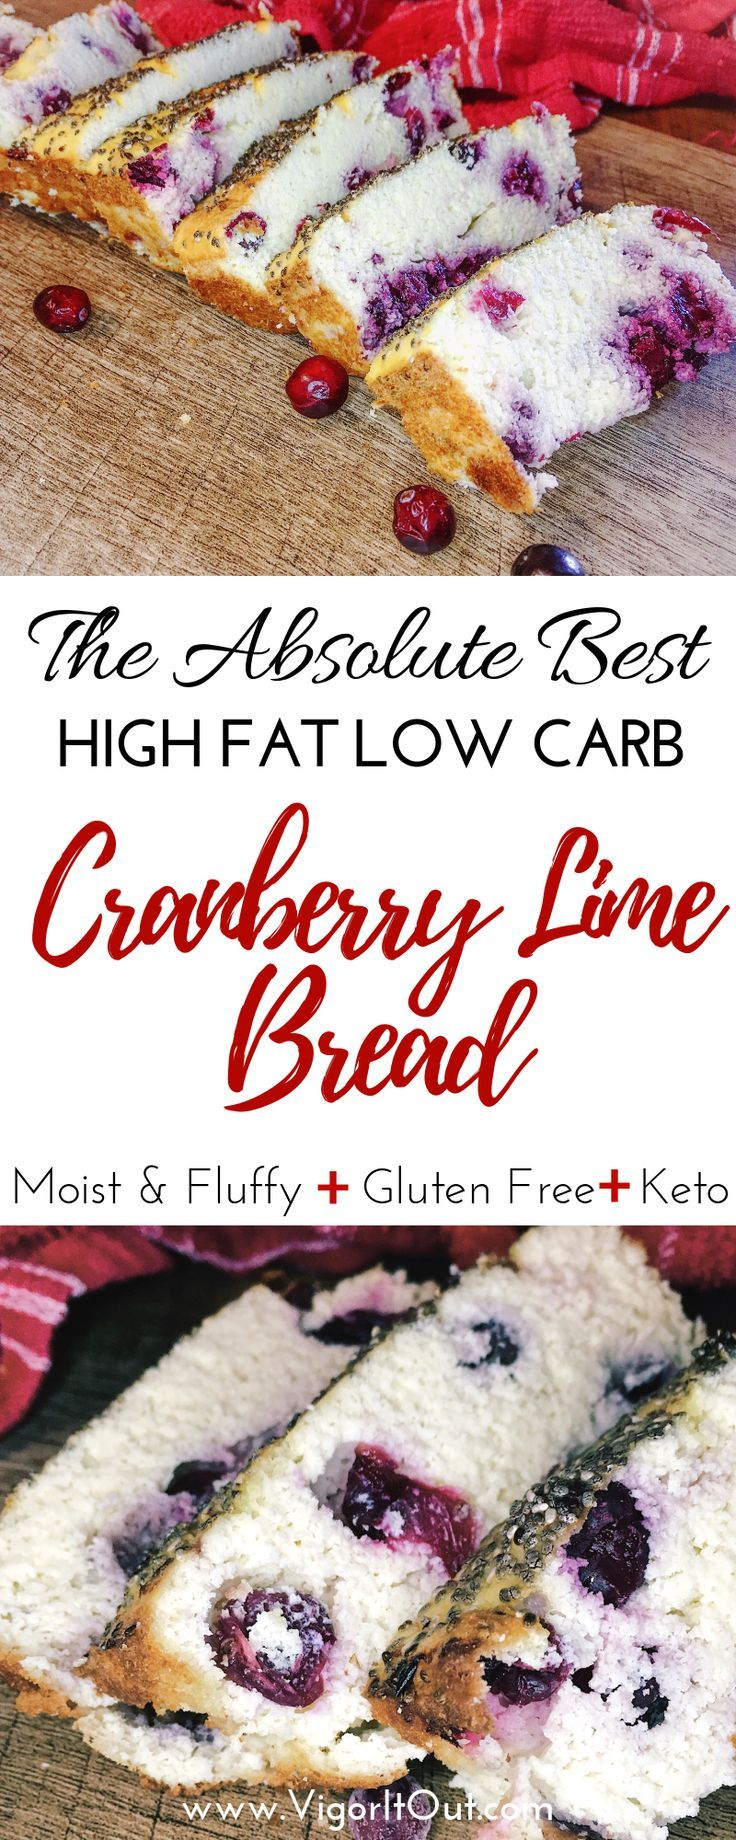 Low Carb Keto Cranberry Bread images